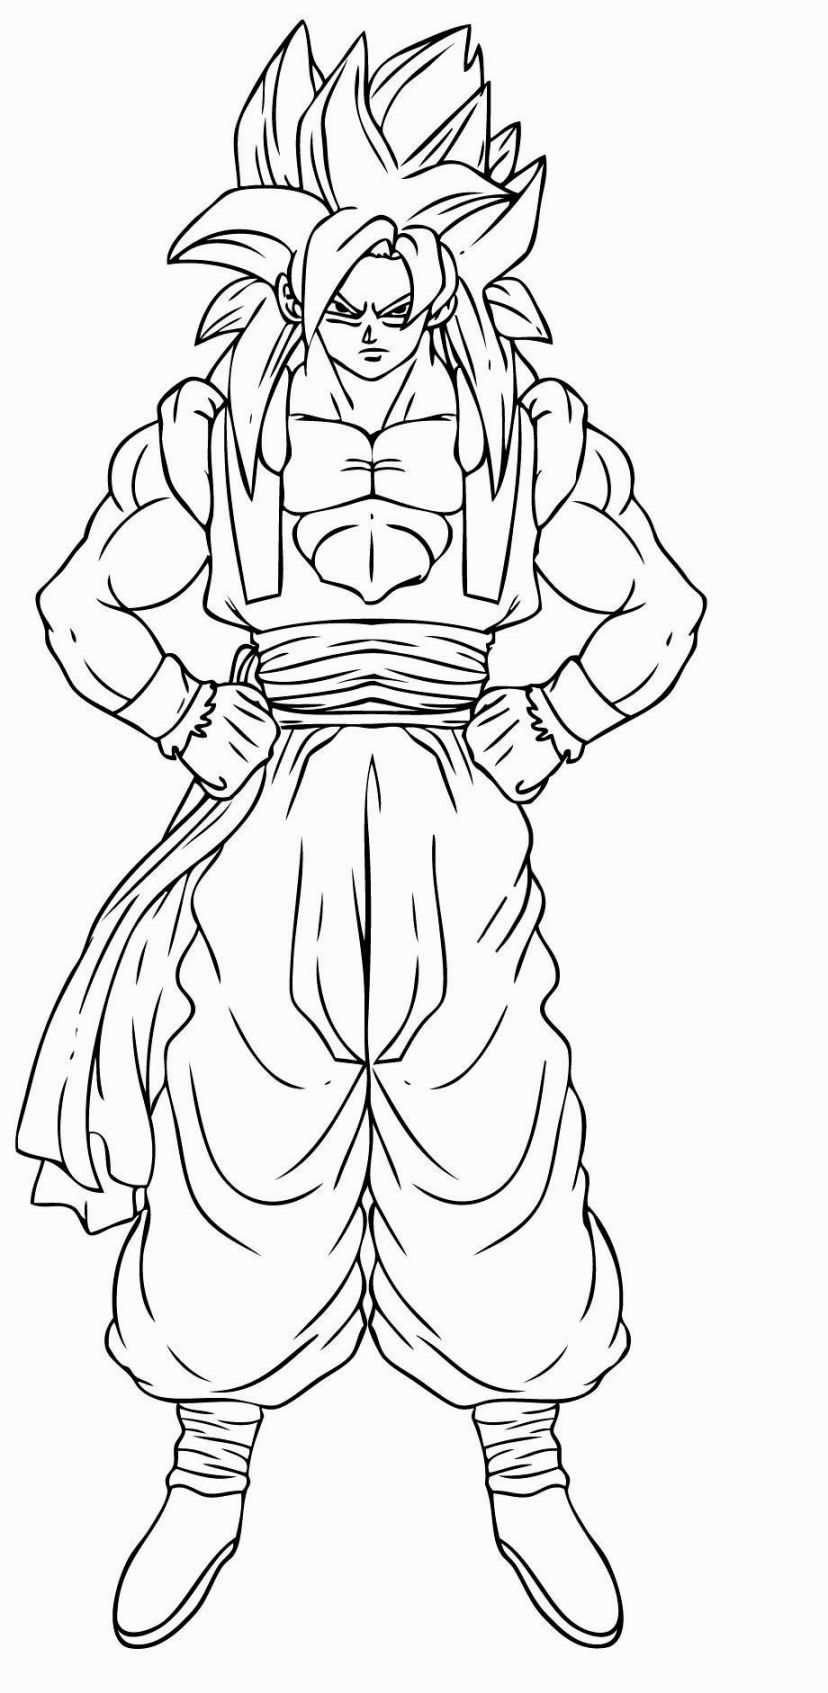 Dbz Coloring Super Coloring Pages Dragon Ball Z Coloring Pages